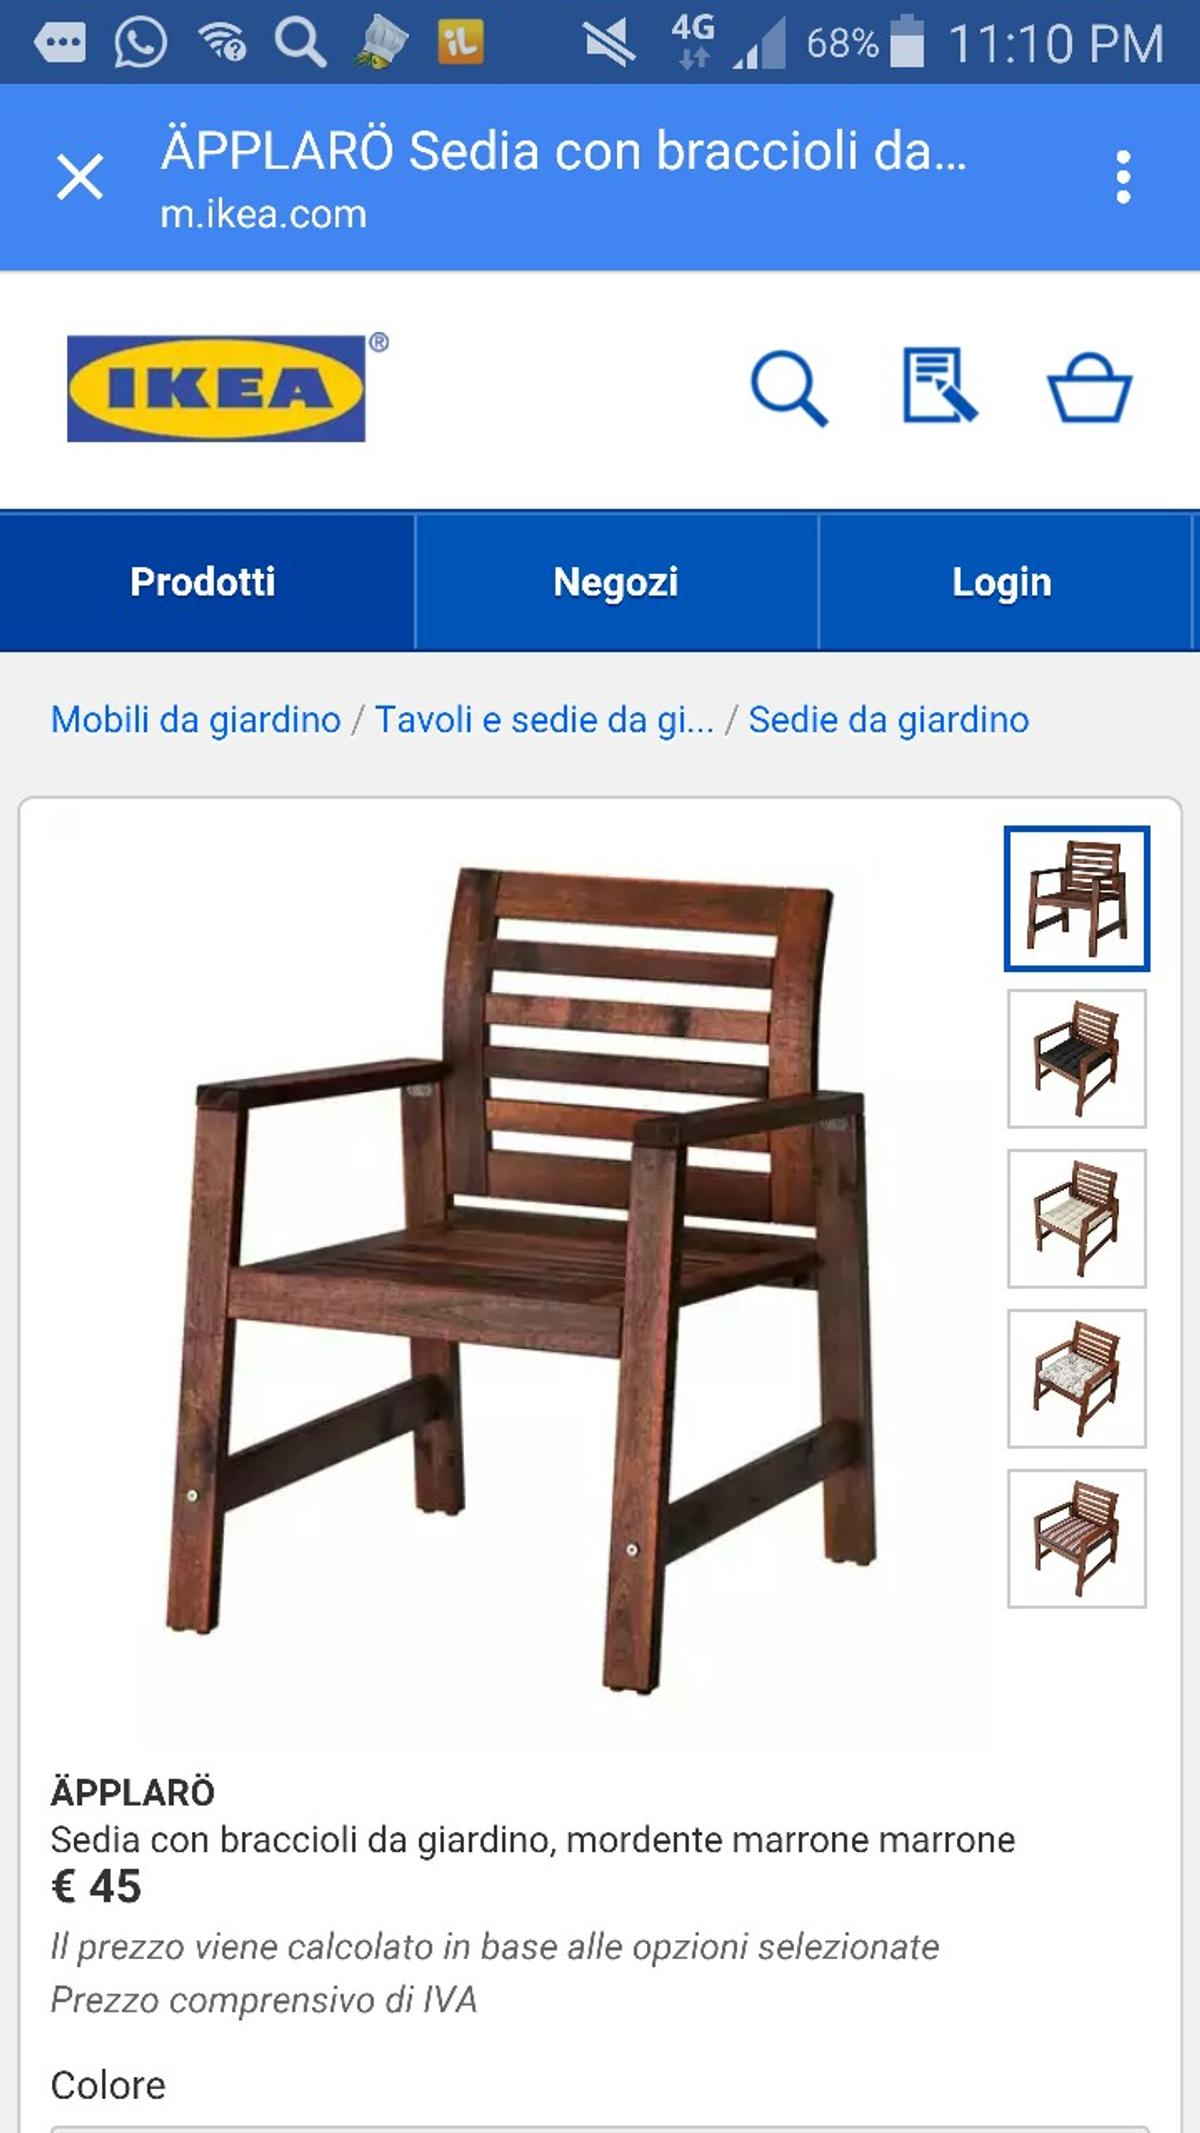 Sedie Da Giardino Ikea 2019.2 Sedie Da Giardino Ikea Applaro In 20090 Vimodrone For 25 00 For